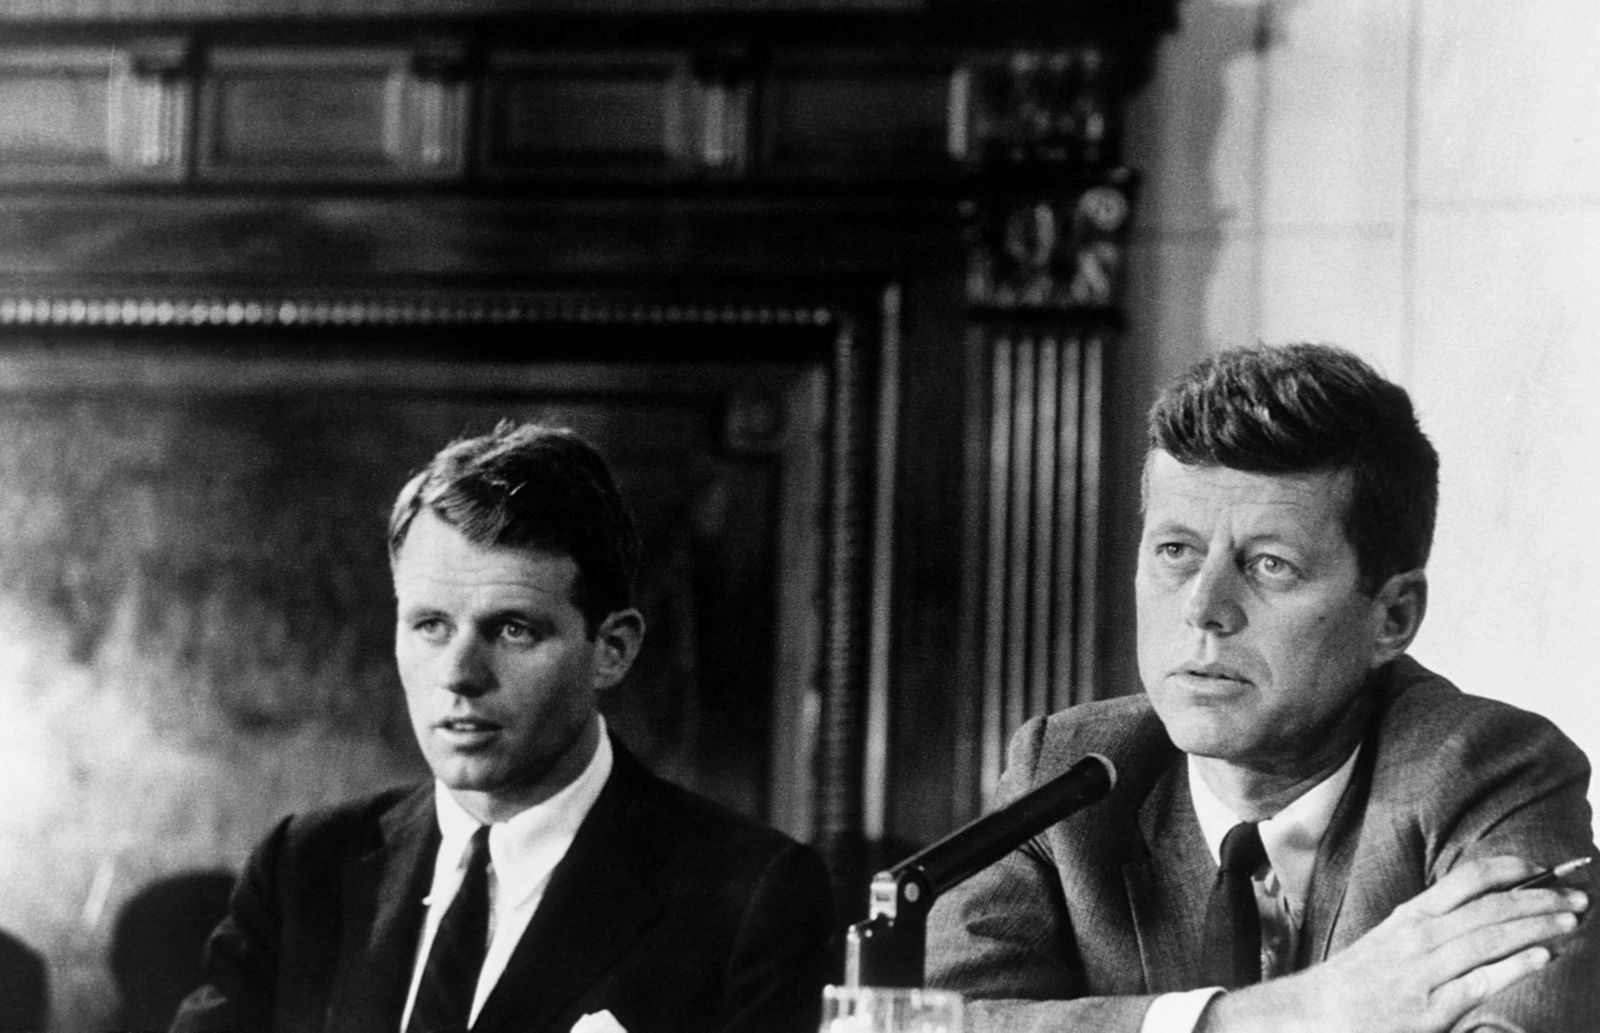 Robert Kennedy and John F. Kennedy at the Mclelllan Hearings, aimed at the Teamsters Union and its leader, Jimmy Hoffa.